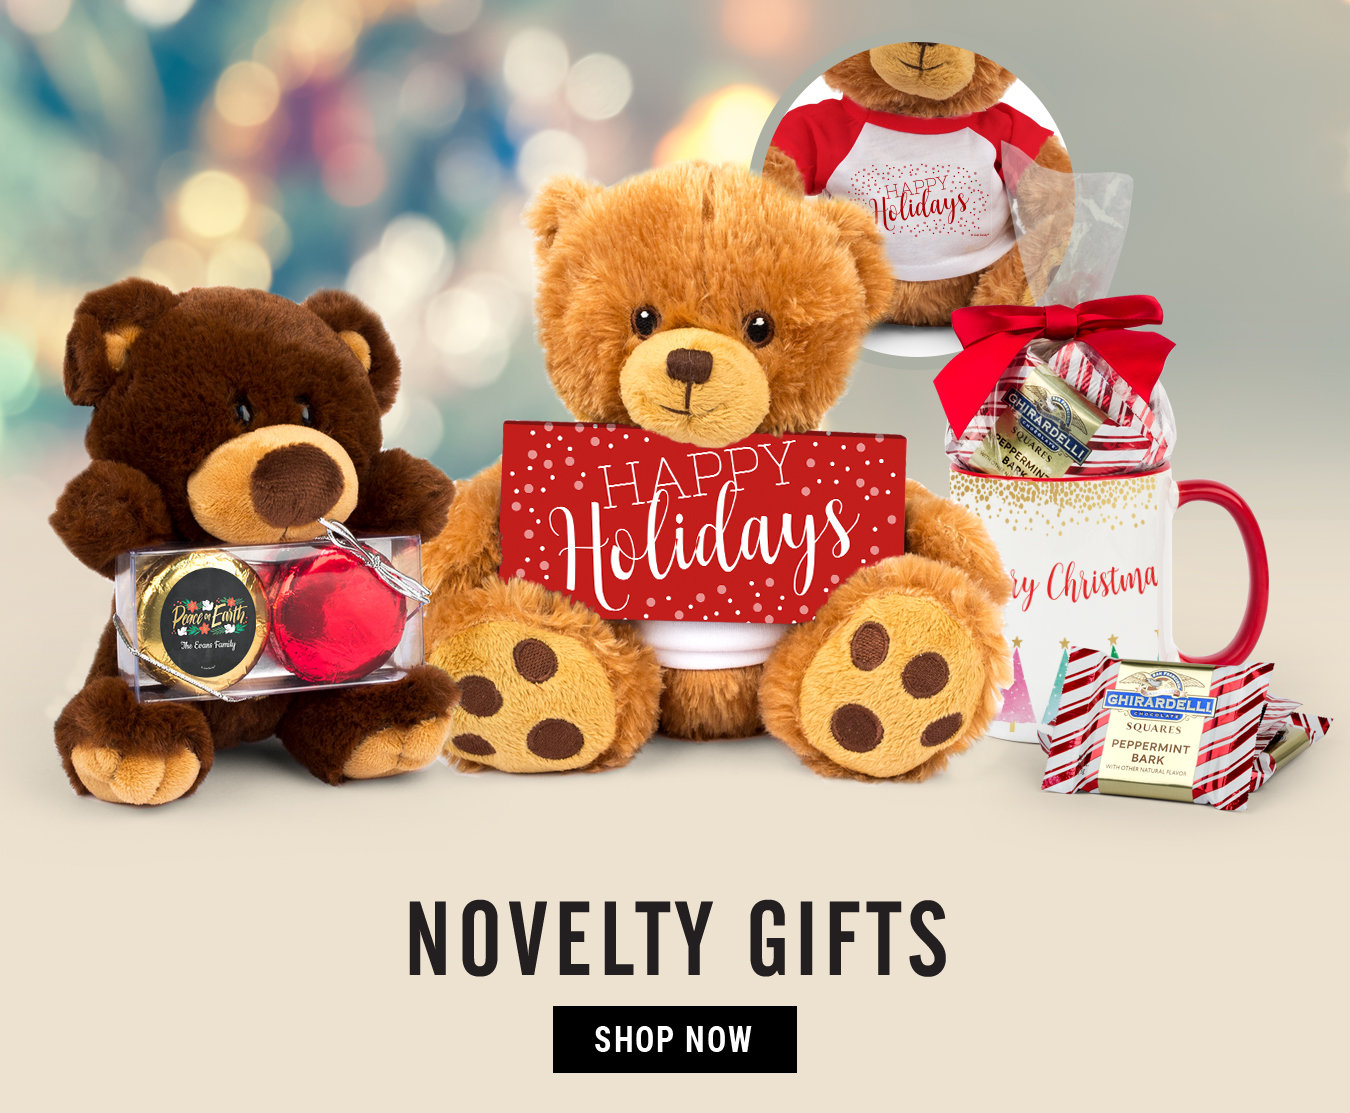 Novelty Gifts Under $25